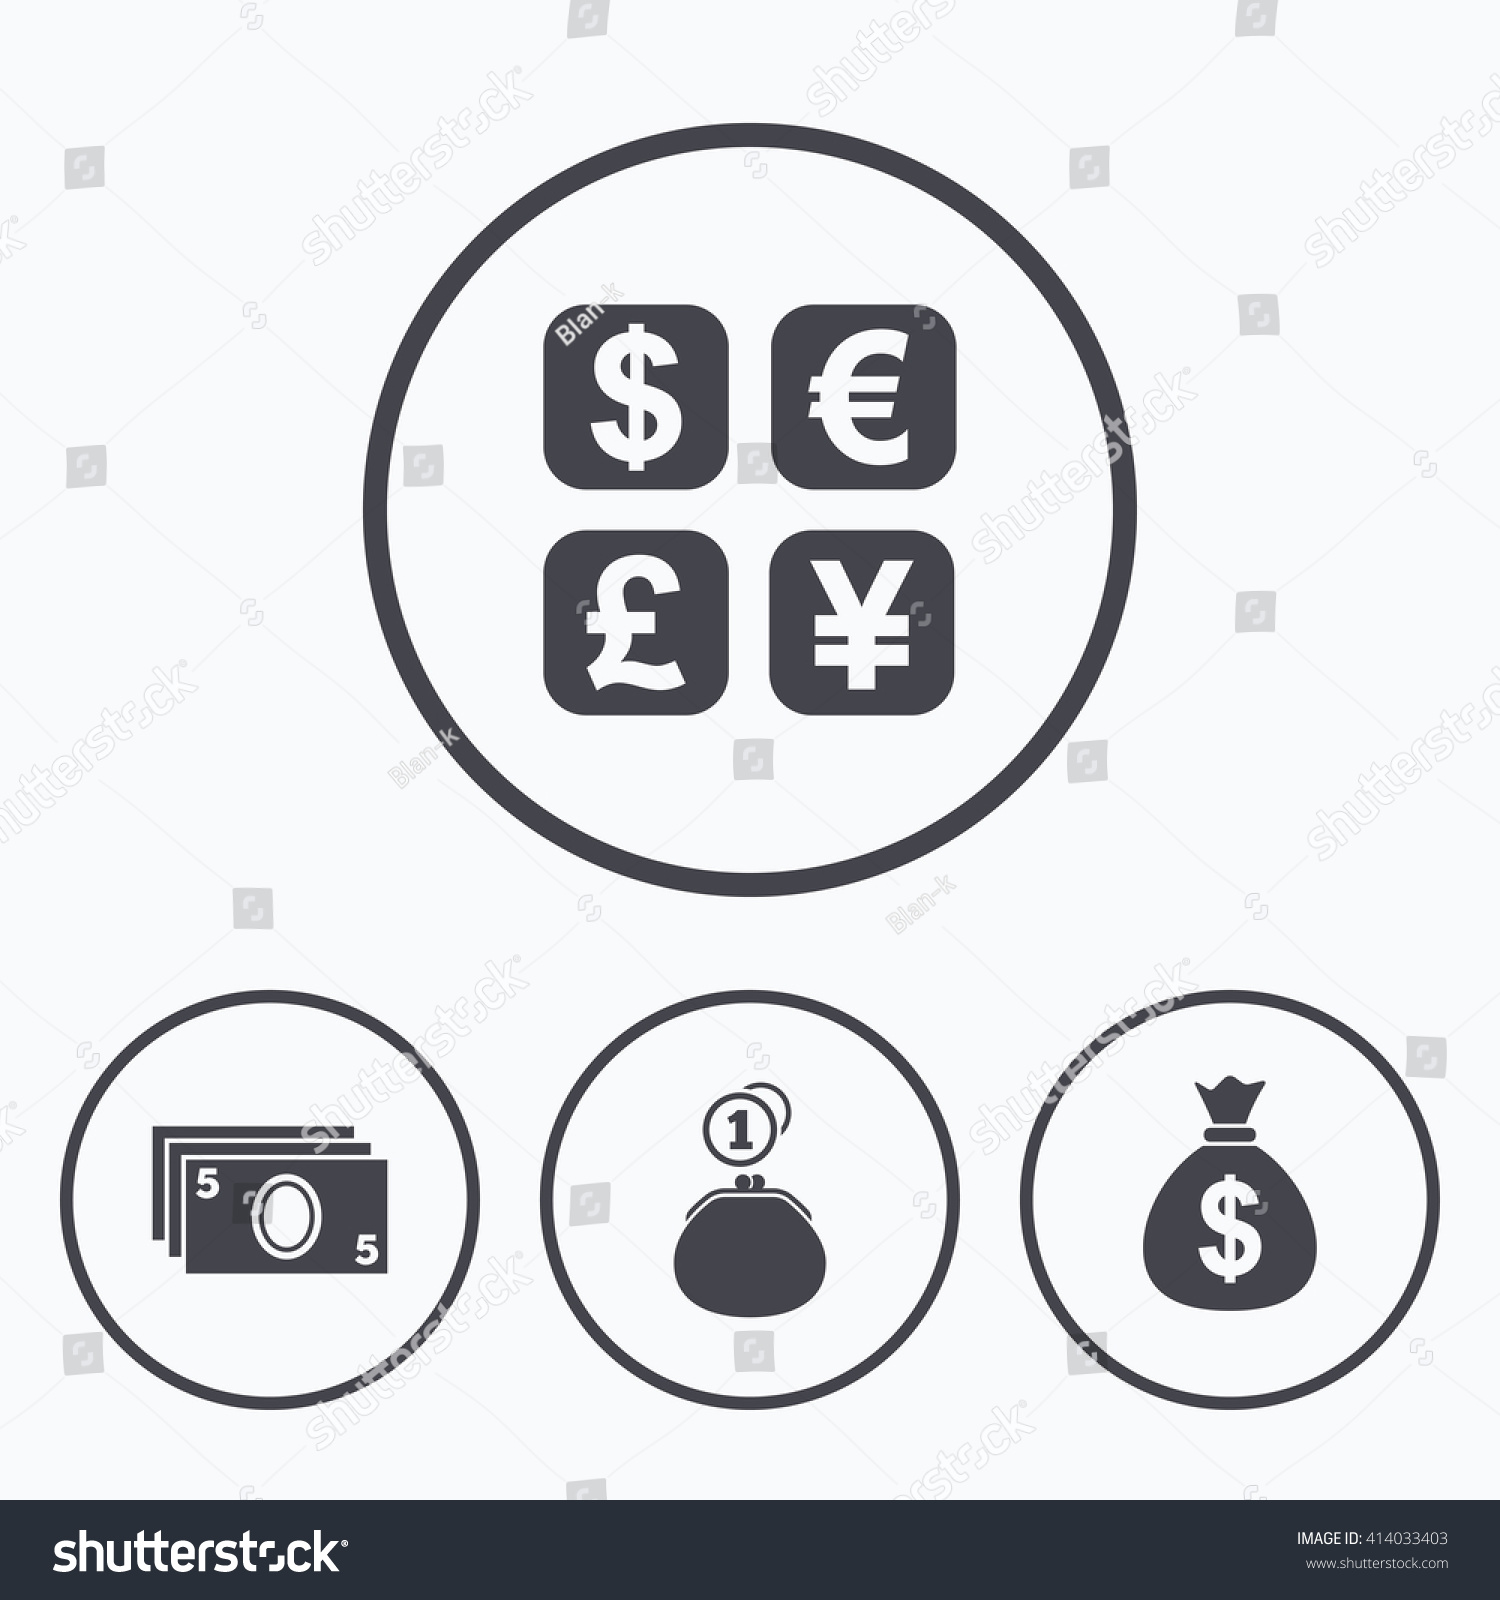 Currency Exchange Icon Cash Money Bag Stock Photo Photo Vector